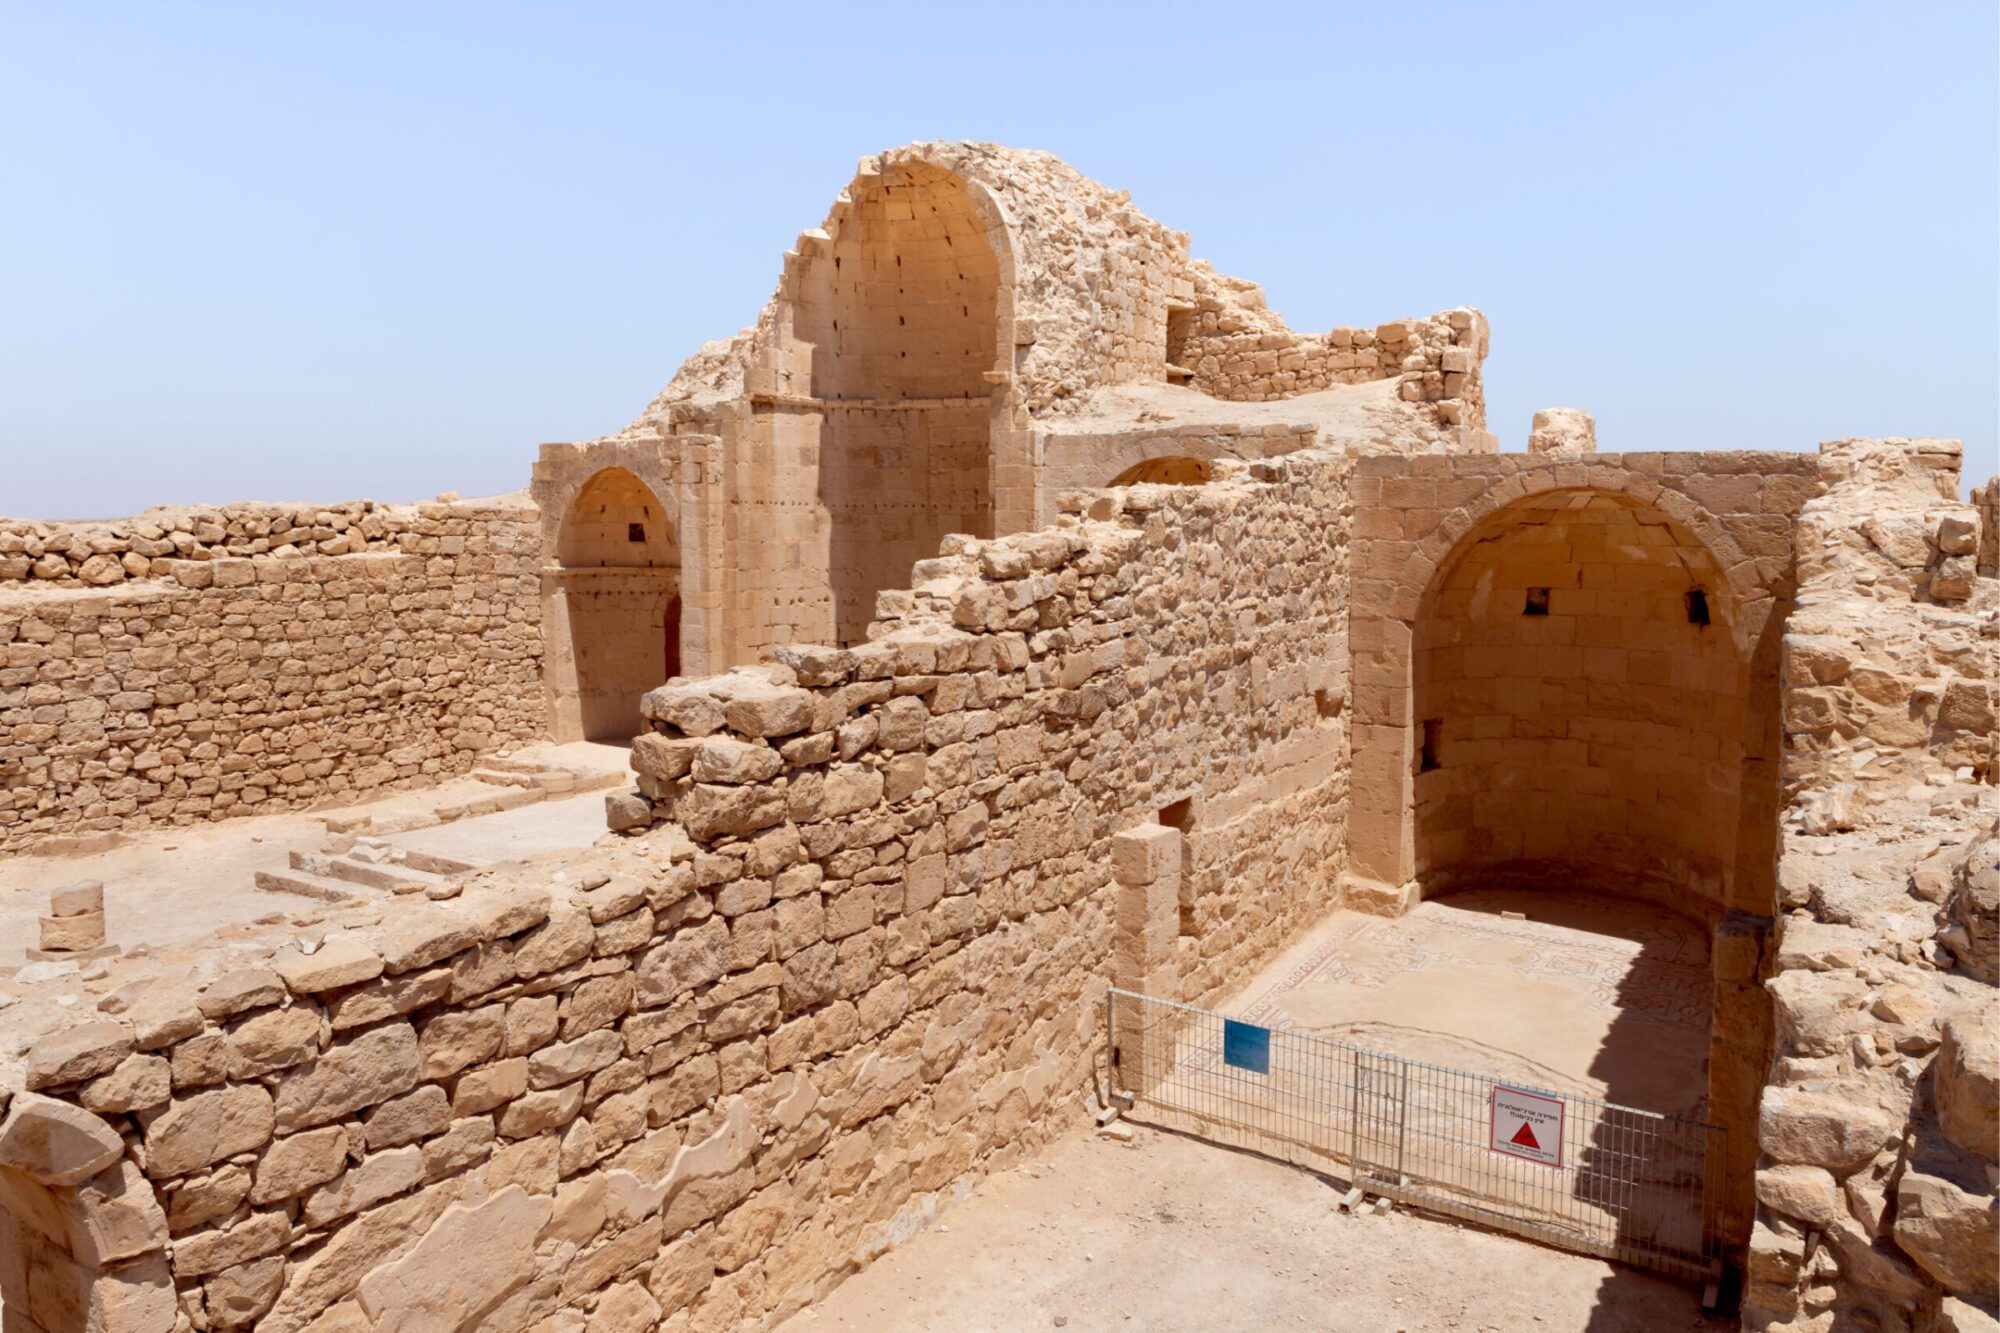 Israel Archaeological One Day Tours - Shivta Northern Church